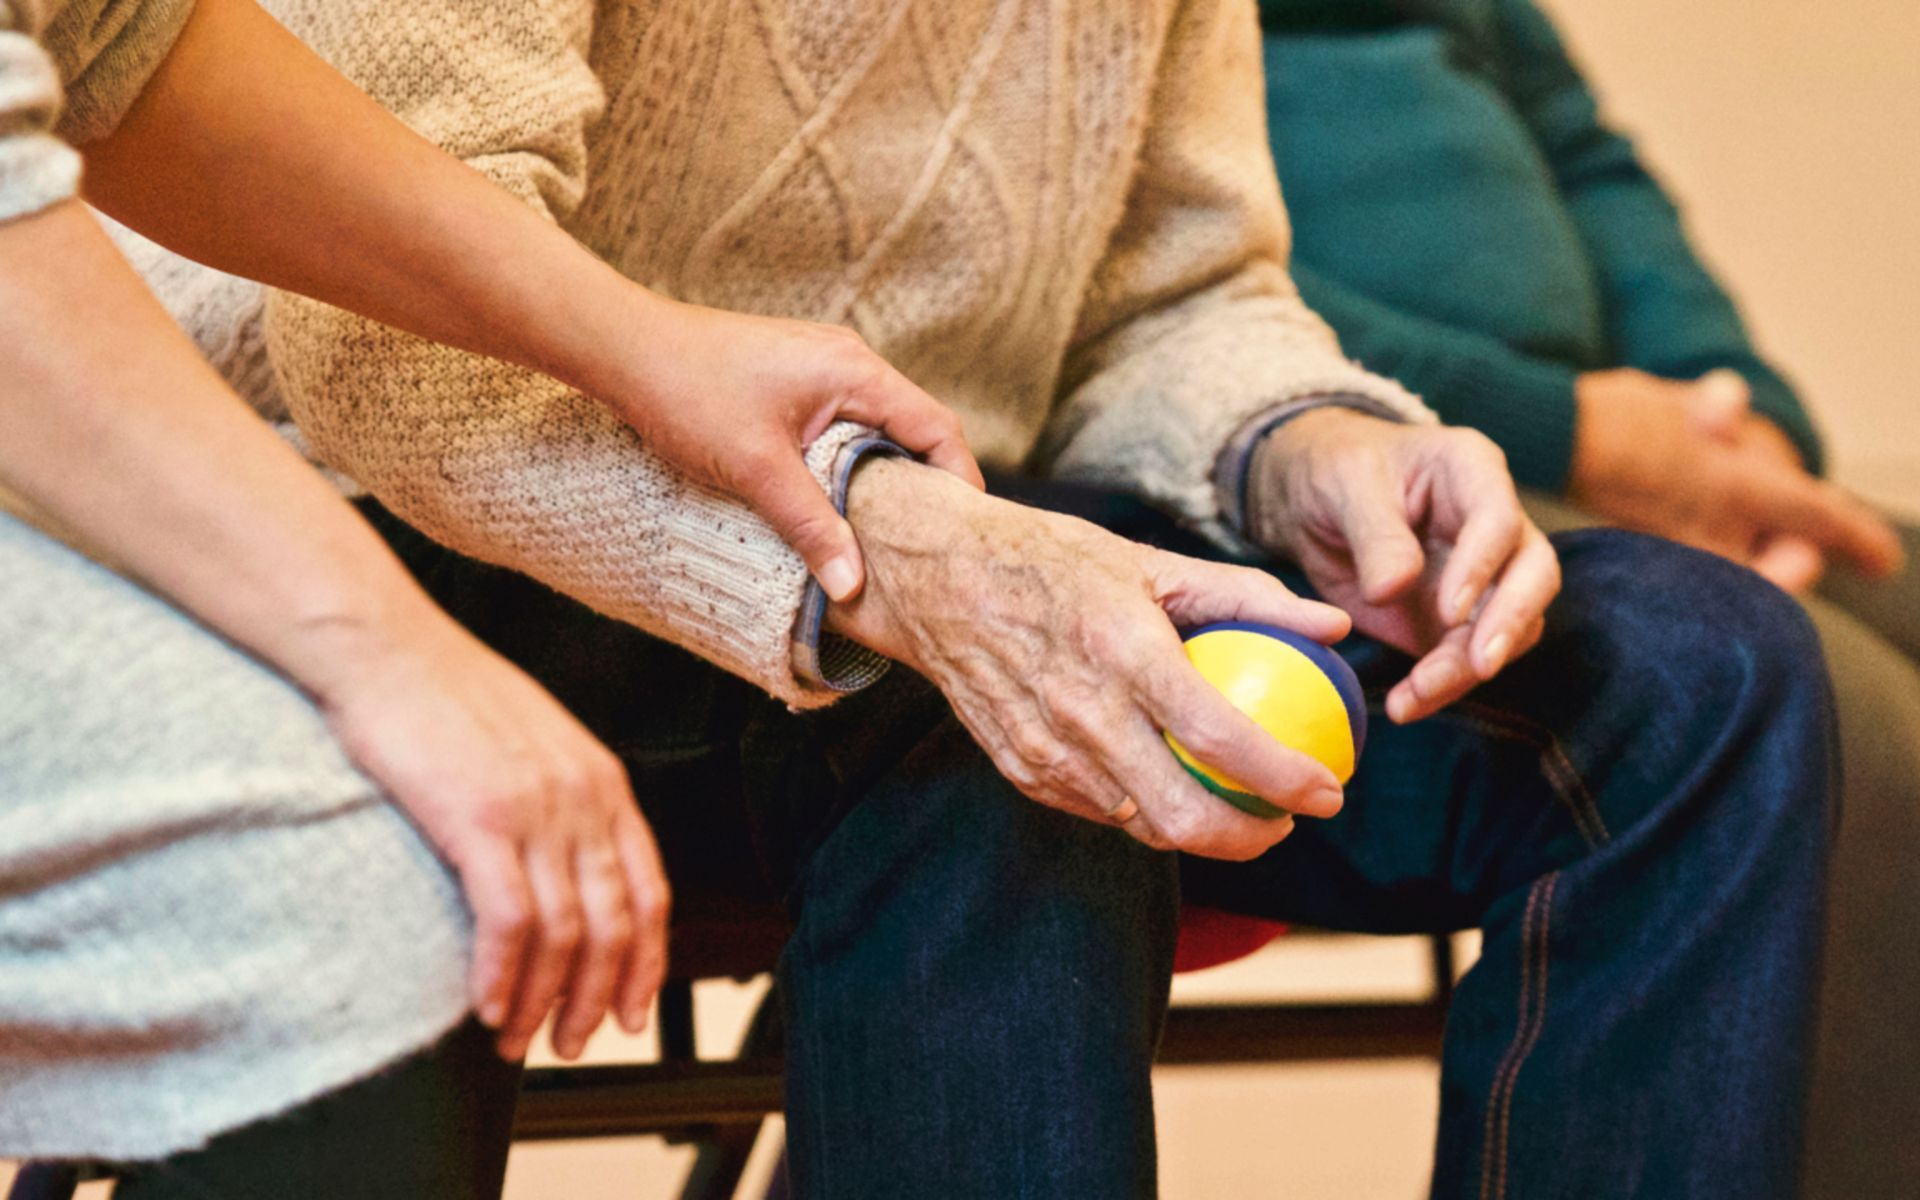 Use of Restraint in the Elderly